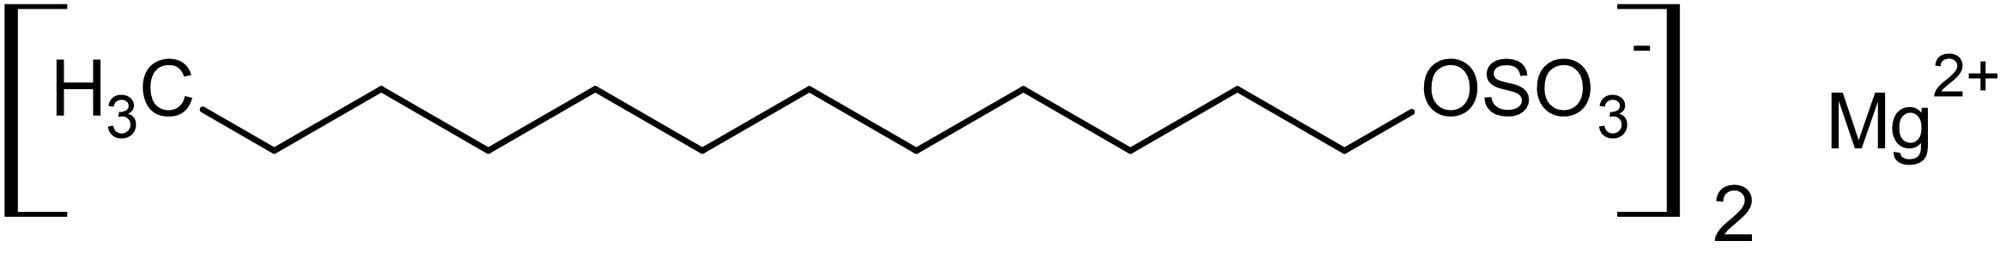 Chemical Structure - Magnesium dodecyl sulfate, Anionic detergent (ab146297)